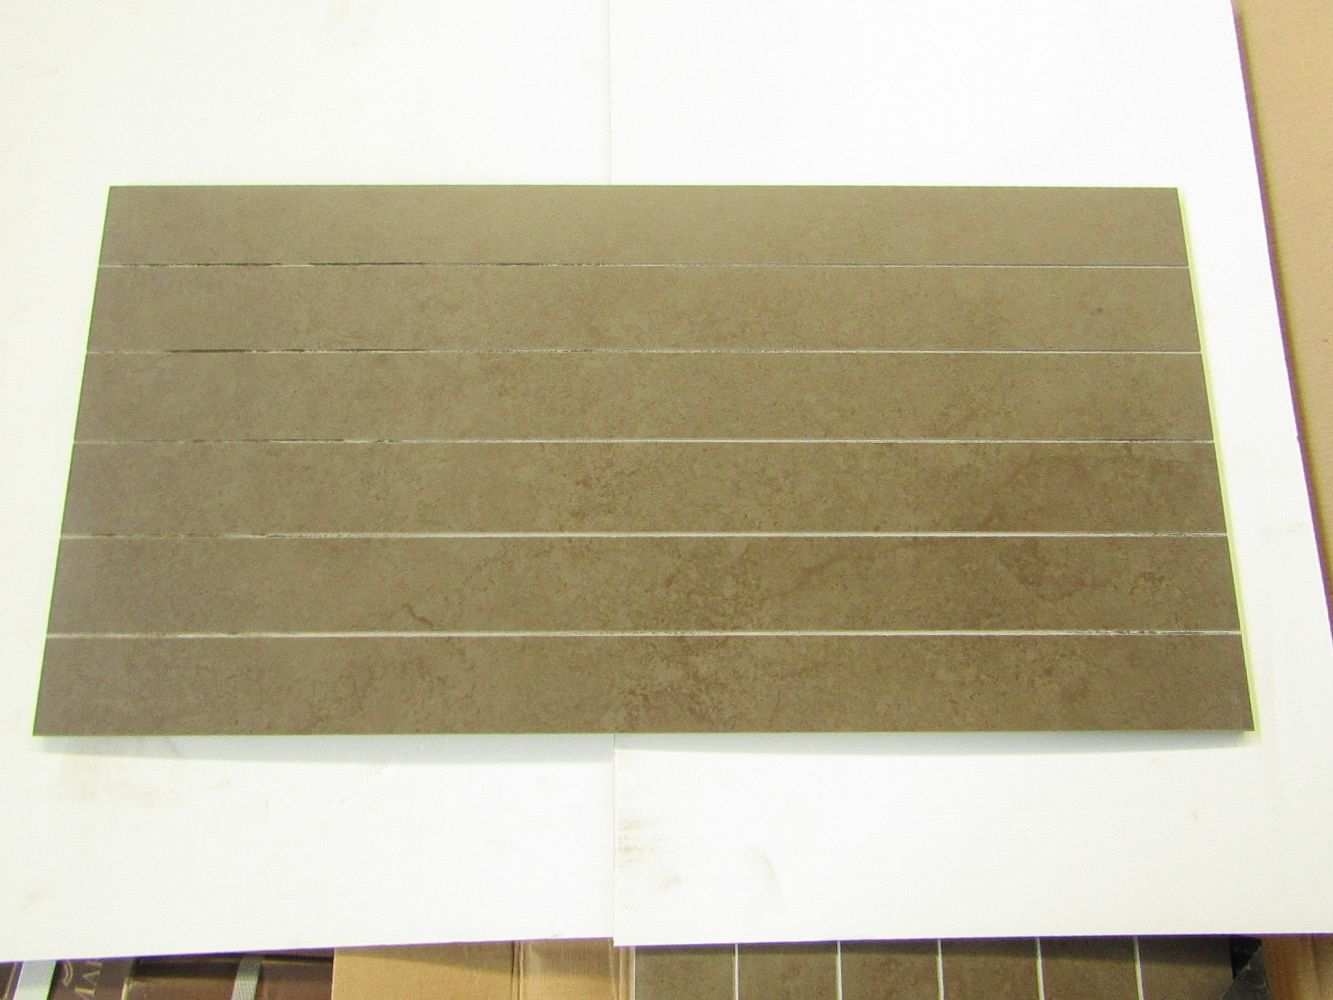 Special 10% Buyers Commission on Bulk Lots of Tiles from Vitra, Johnsons and Marco Polo, lots start at 20% of Retail!!!